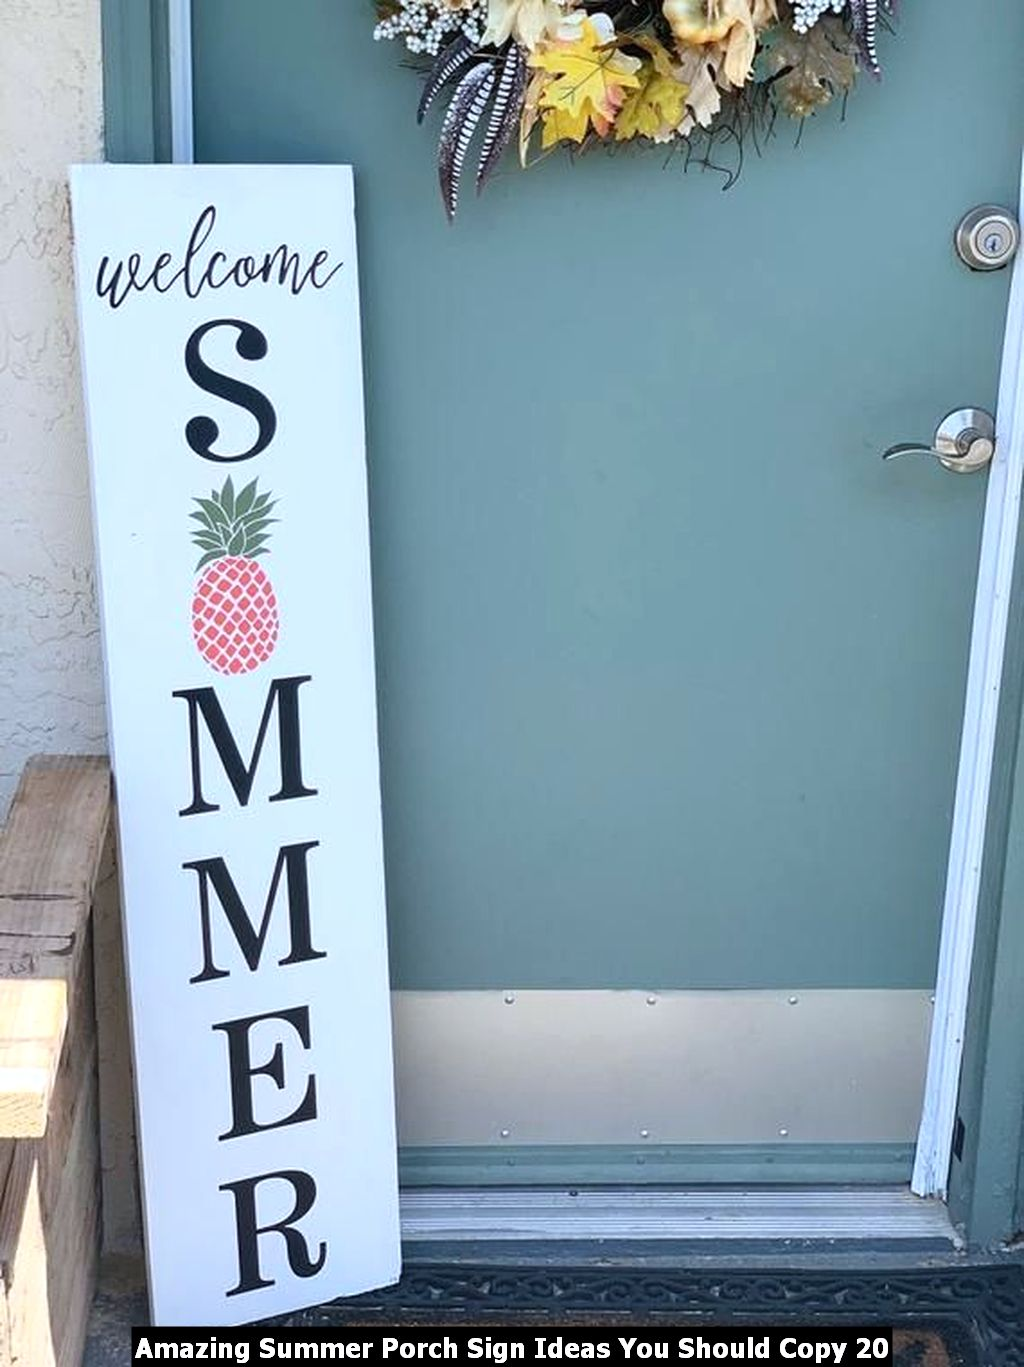 Amazing Summer Porch Sign Ideas You Should Copy 20